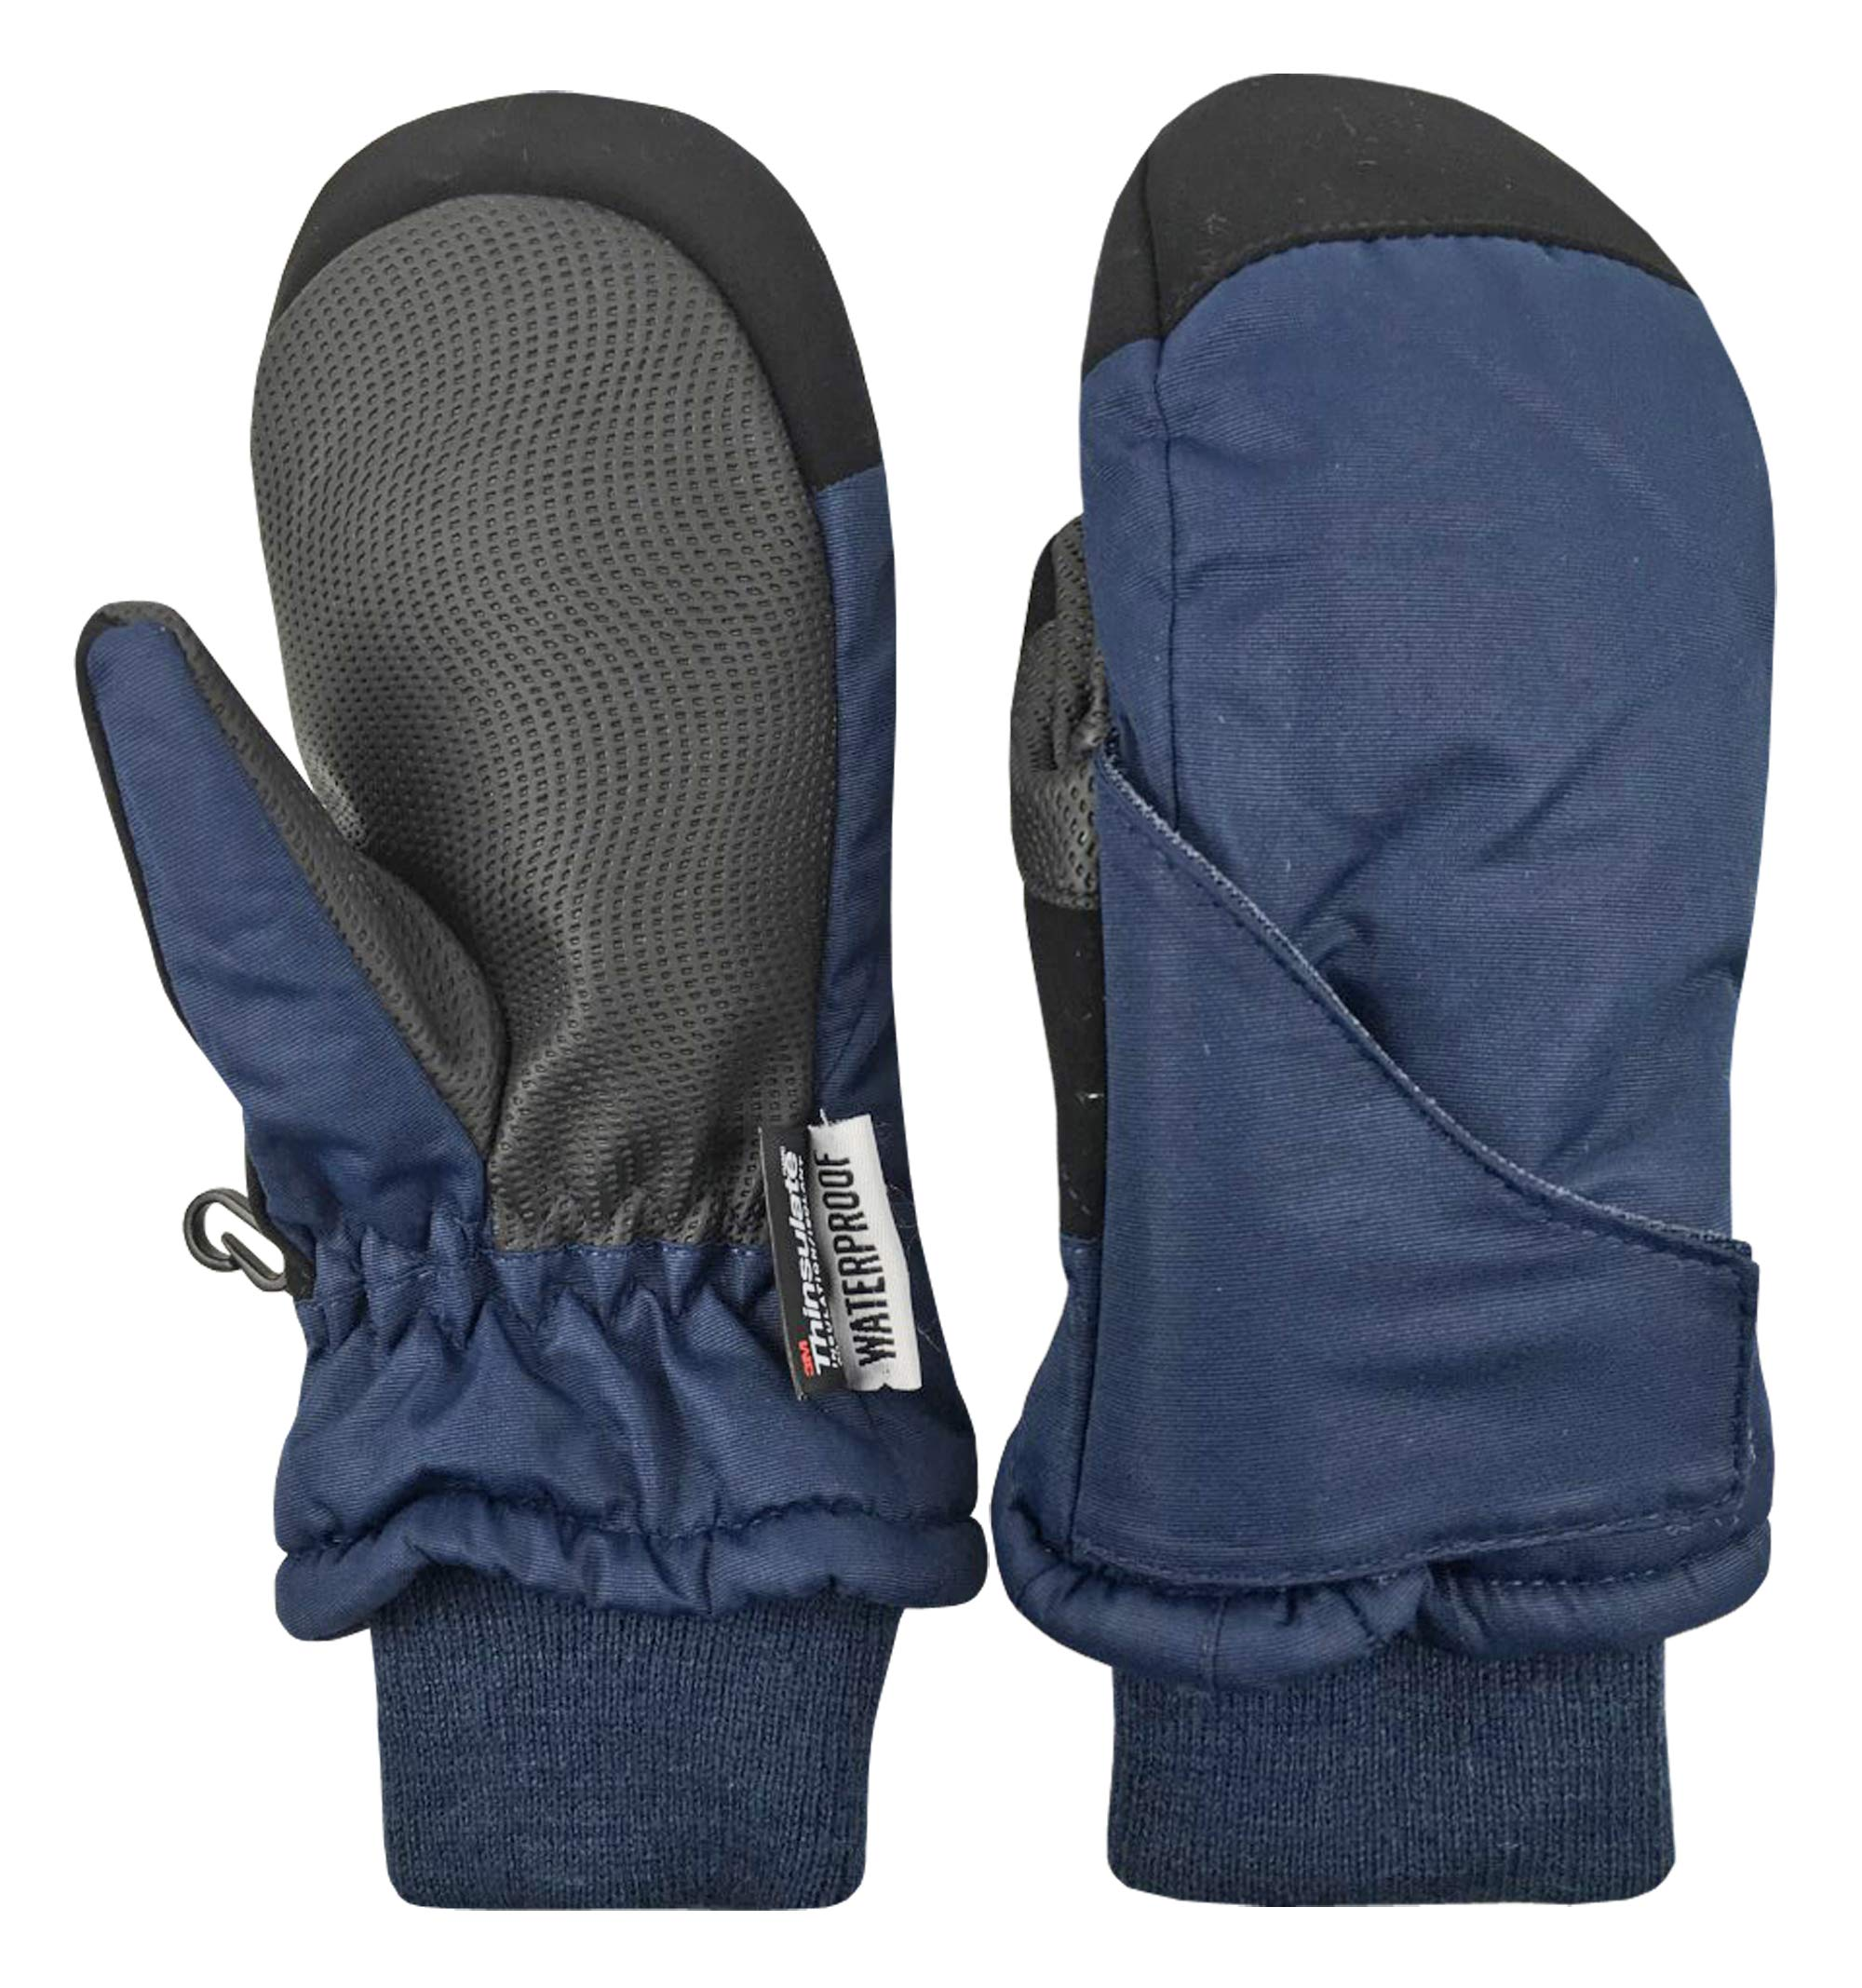 N'Ice Caps Kids and Baby Easy-On Wrap Waterproof Thinsulate Winter Snow Mitten (Navy 2, 2-3 Years) by N'Ice Caps